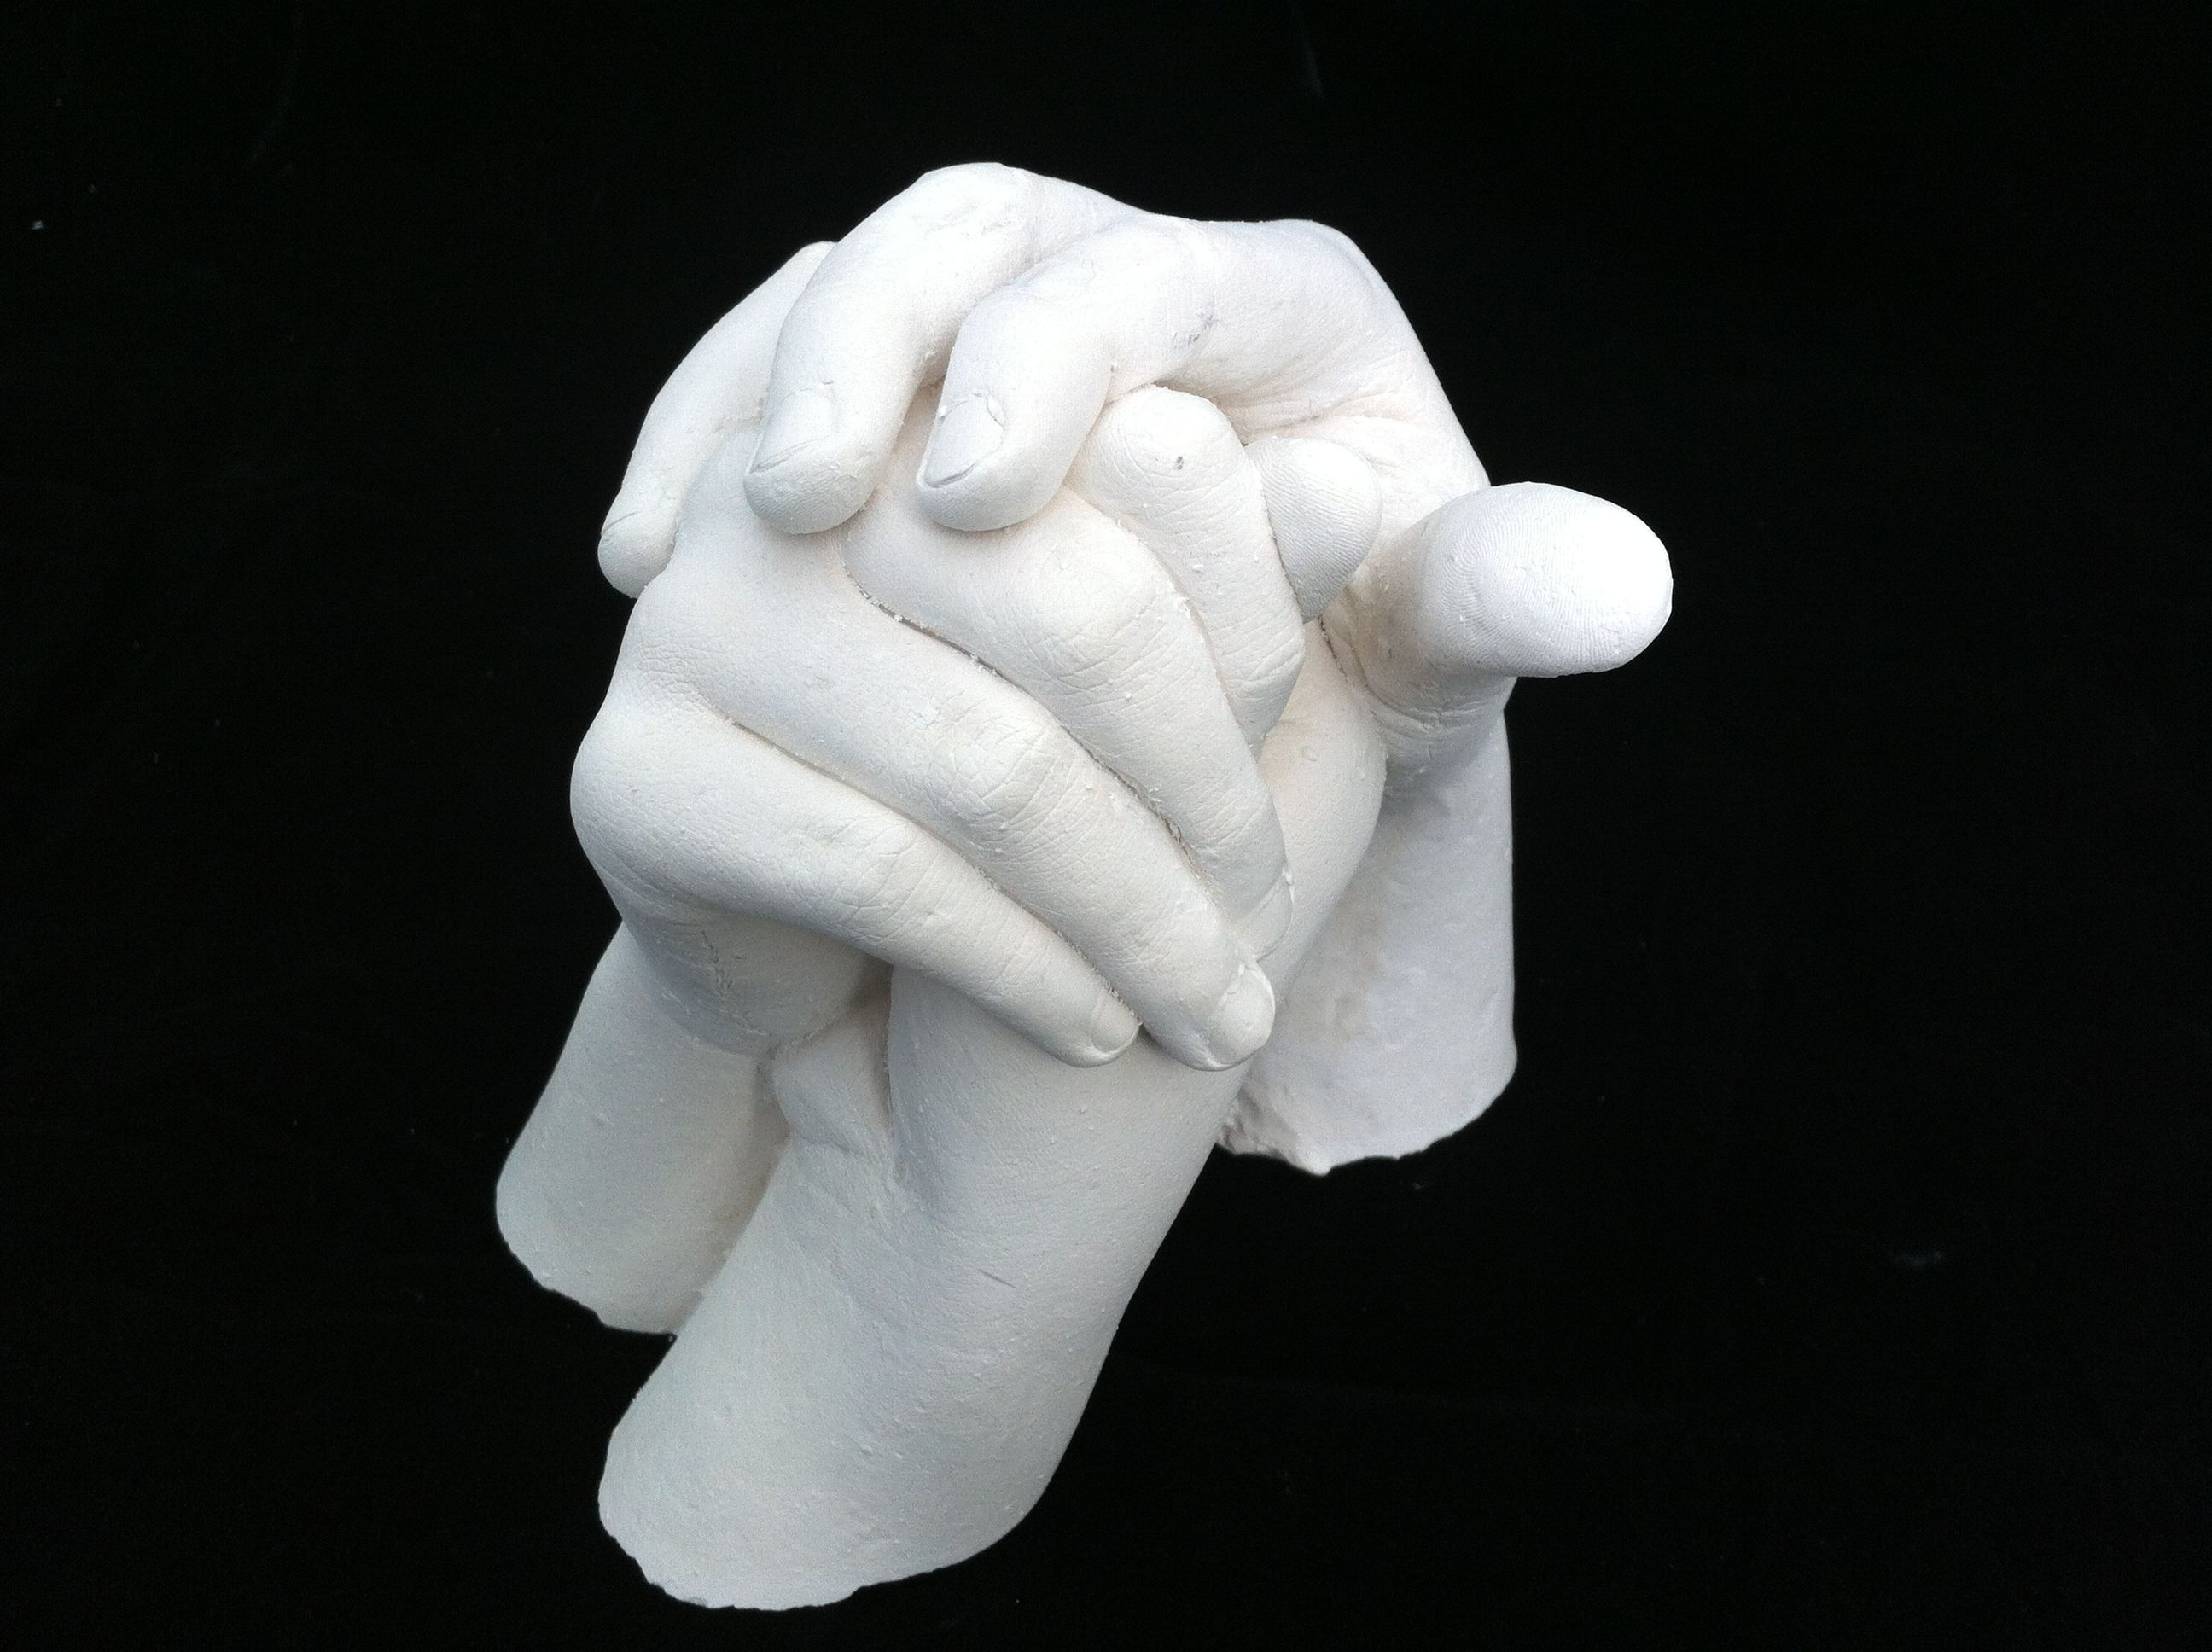 Brothers Hands Cast together. A stunning (and heavy) keepsake statue in stonecast resin. By Babyprints.co.uk